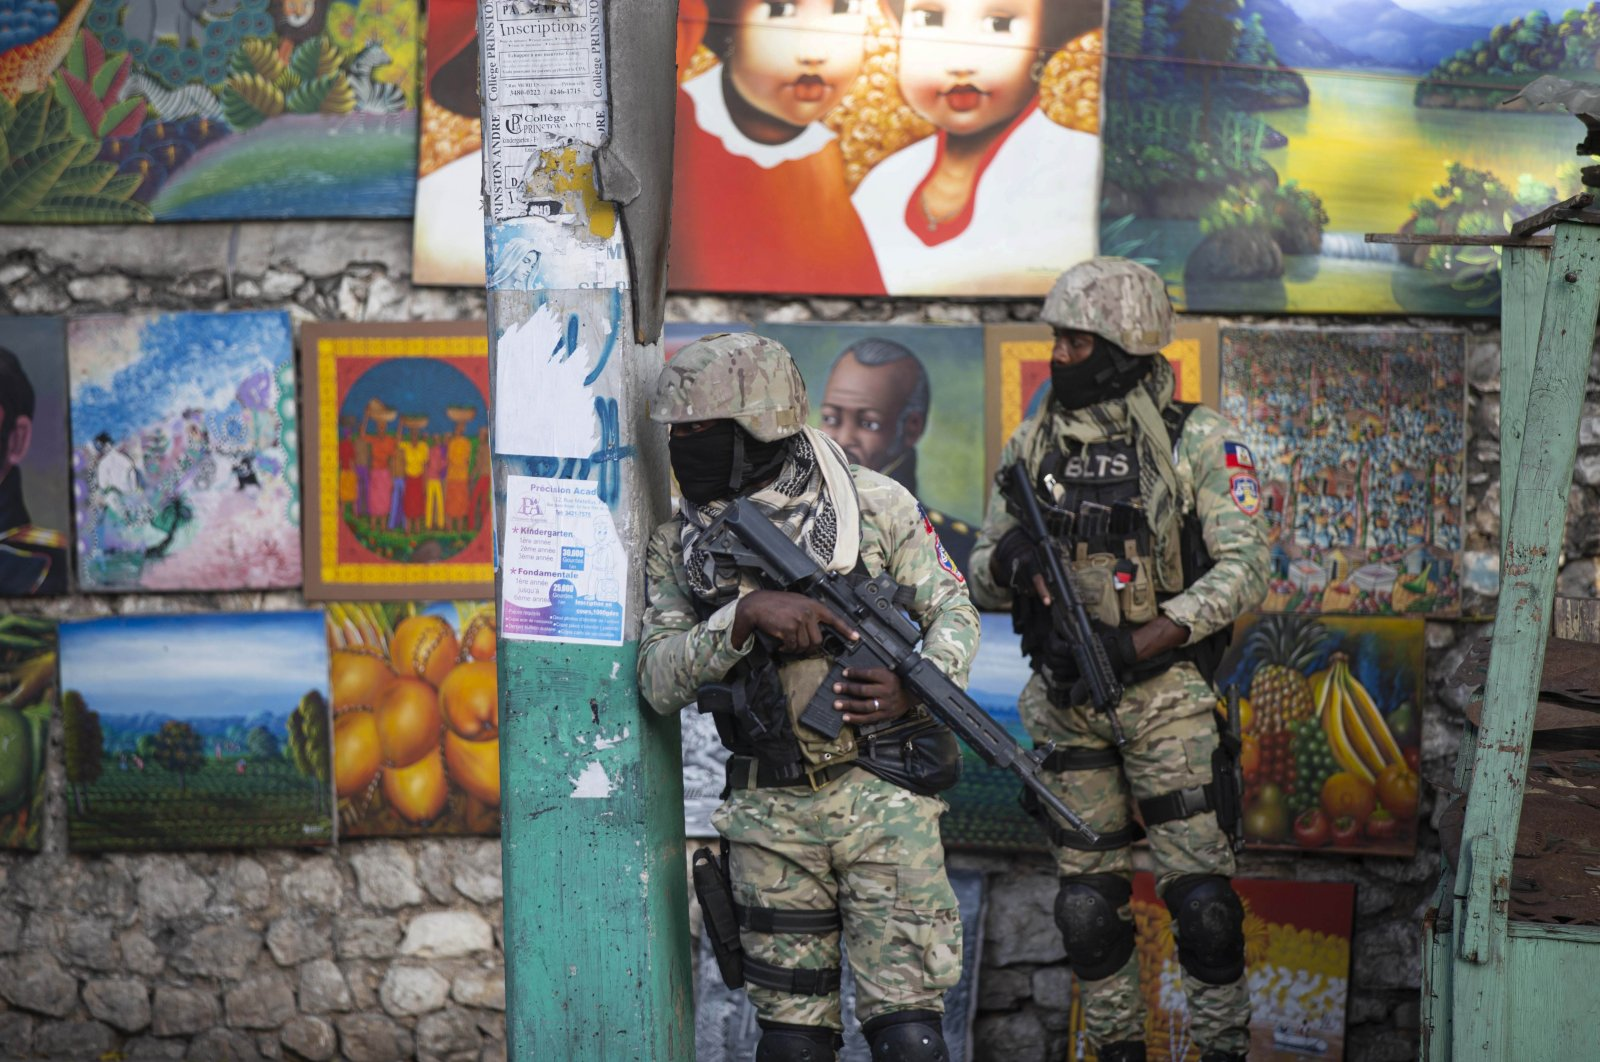 Soldiers patrol in Petion Ville, the neighborhood where the late Haitian President Jovenel Moise lived in Port-au-Prince, Haiti, July 7, 2021. (AP Photo)